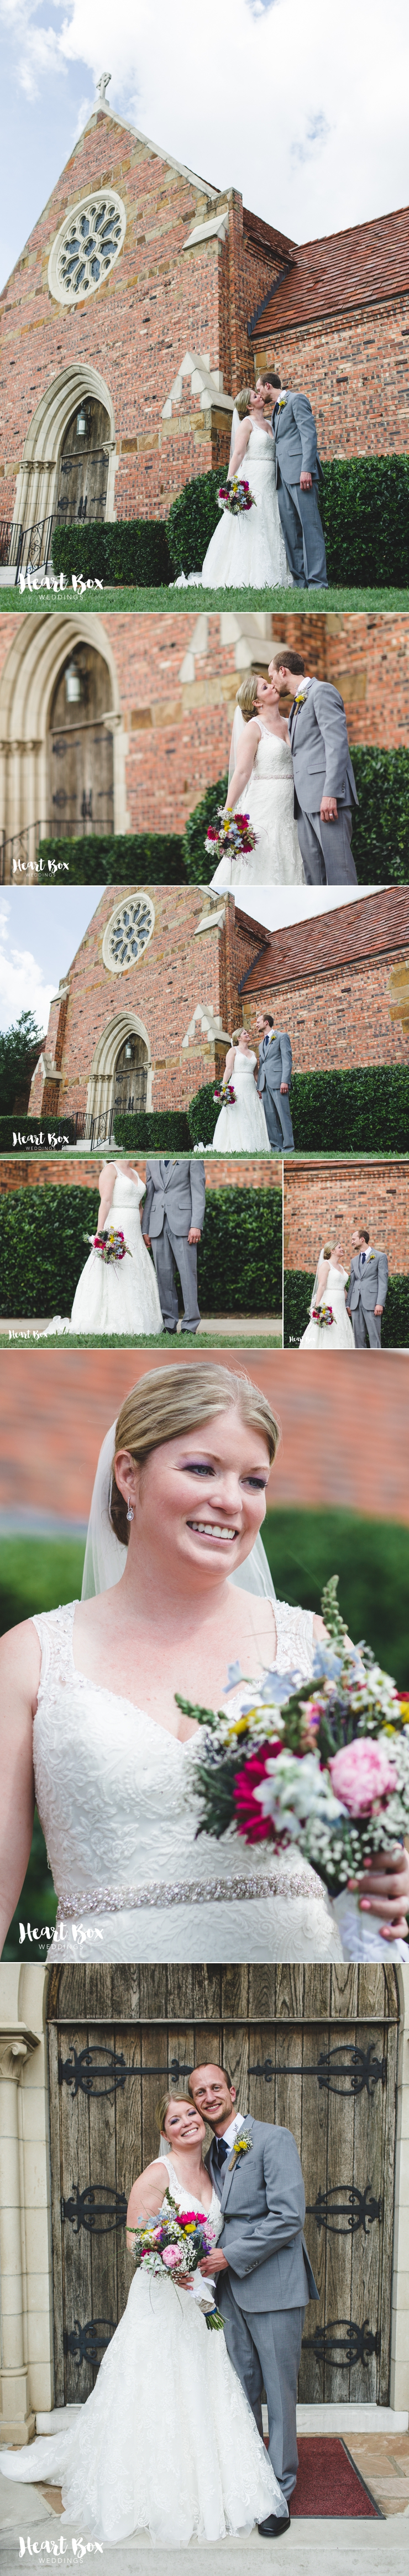 Louisa + Jon Wedding Blog Collages 7.jpg